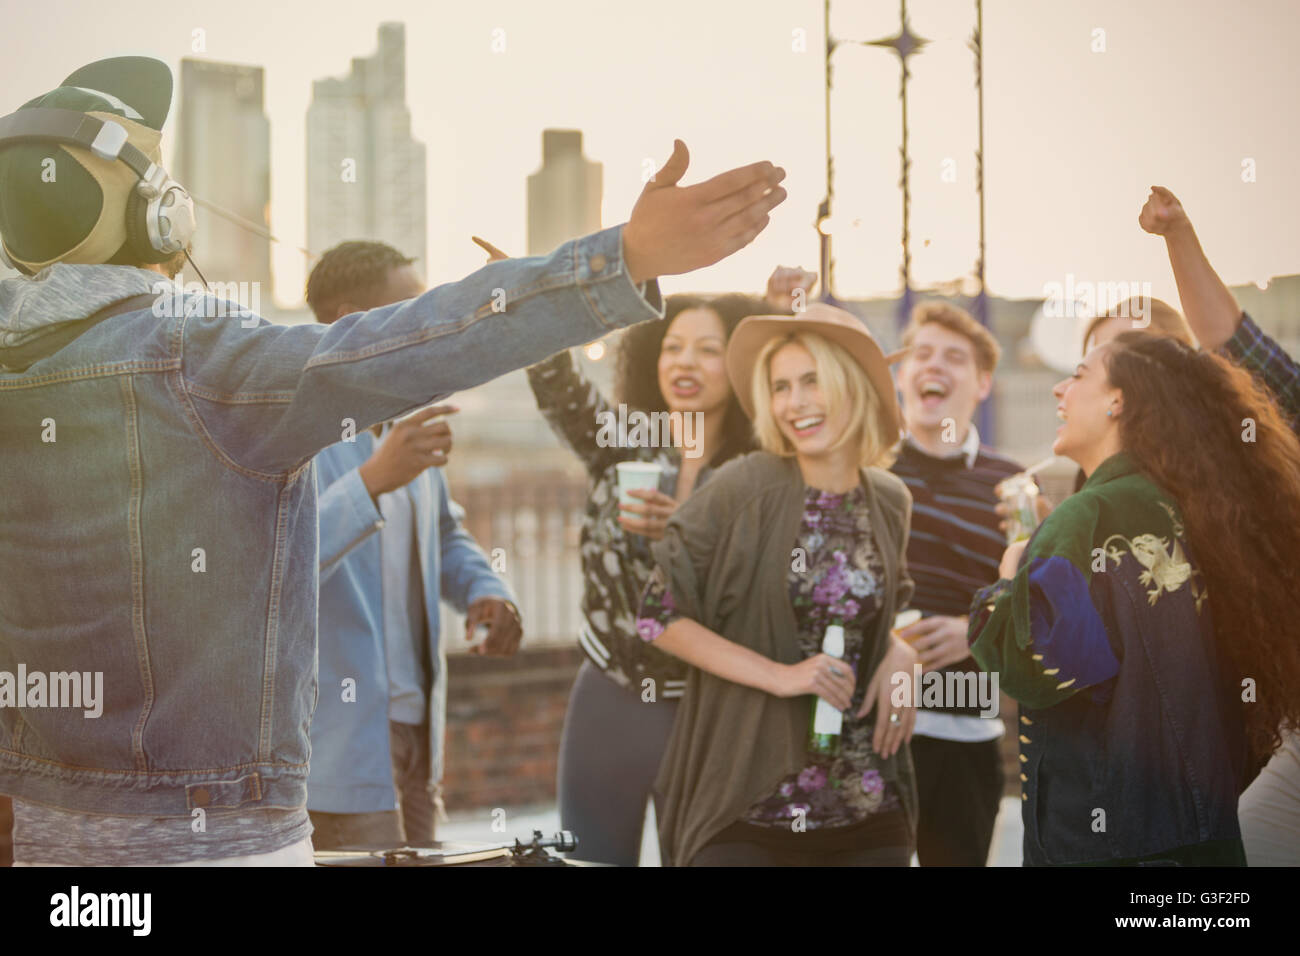 Crowd cheering for DJ at rooftop party - Stock Image